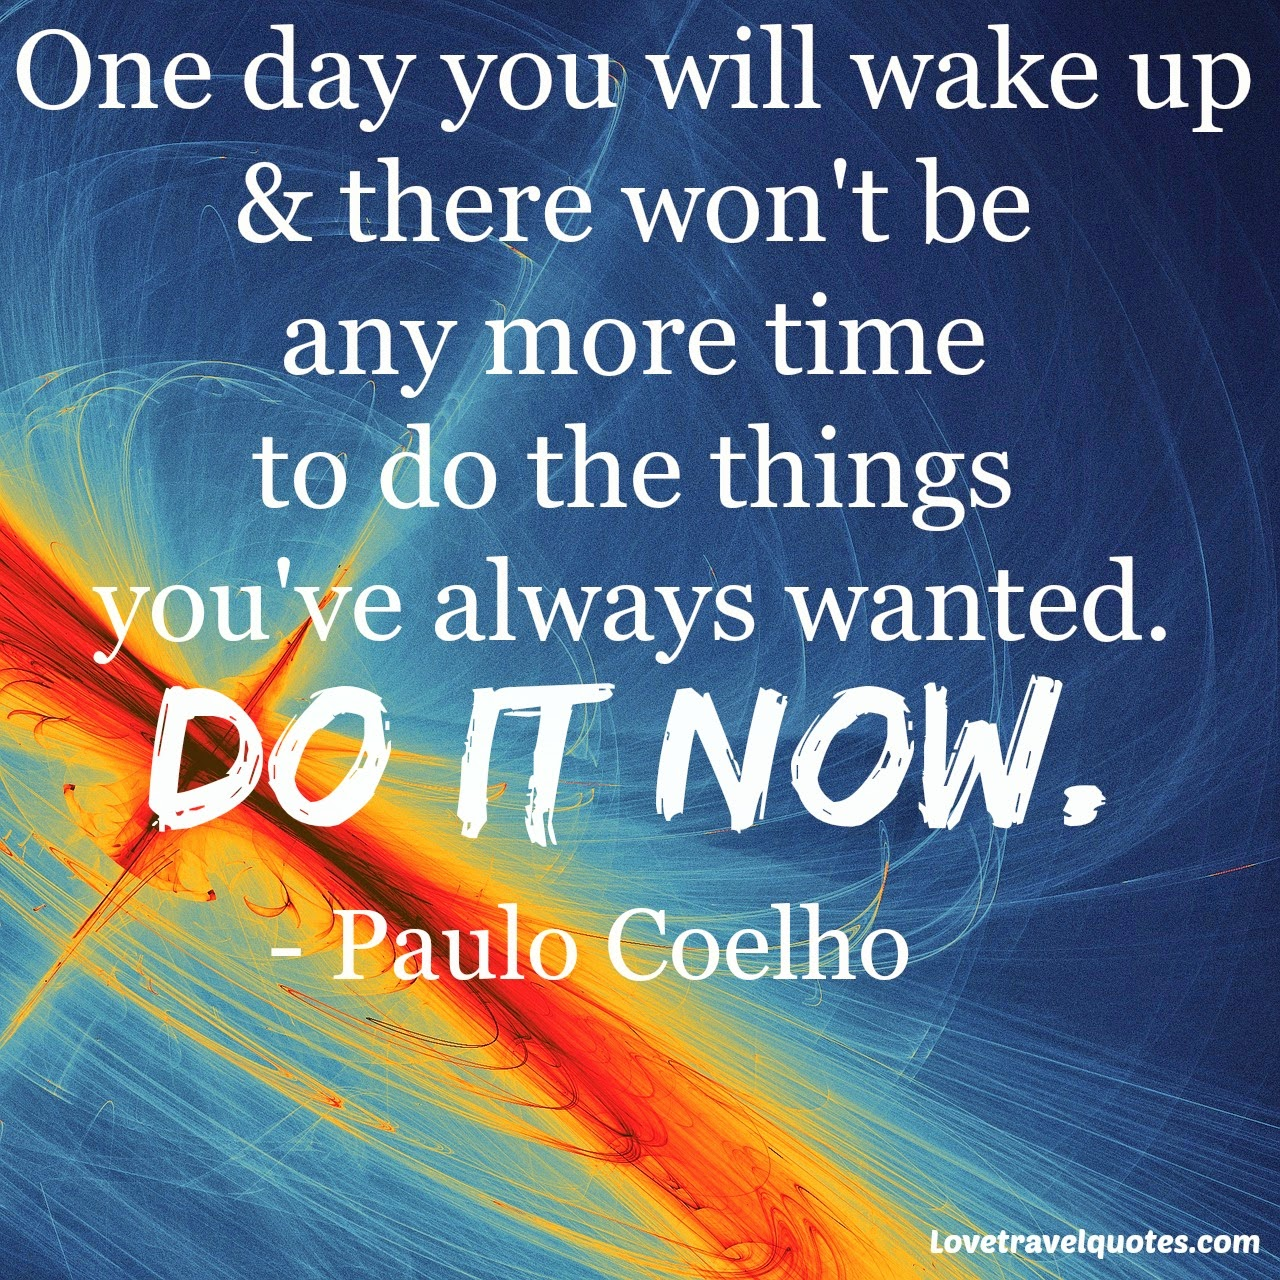 One day you will wake up and there won't be any more time to do the things you've always wanted. Do it now